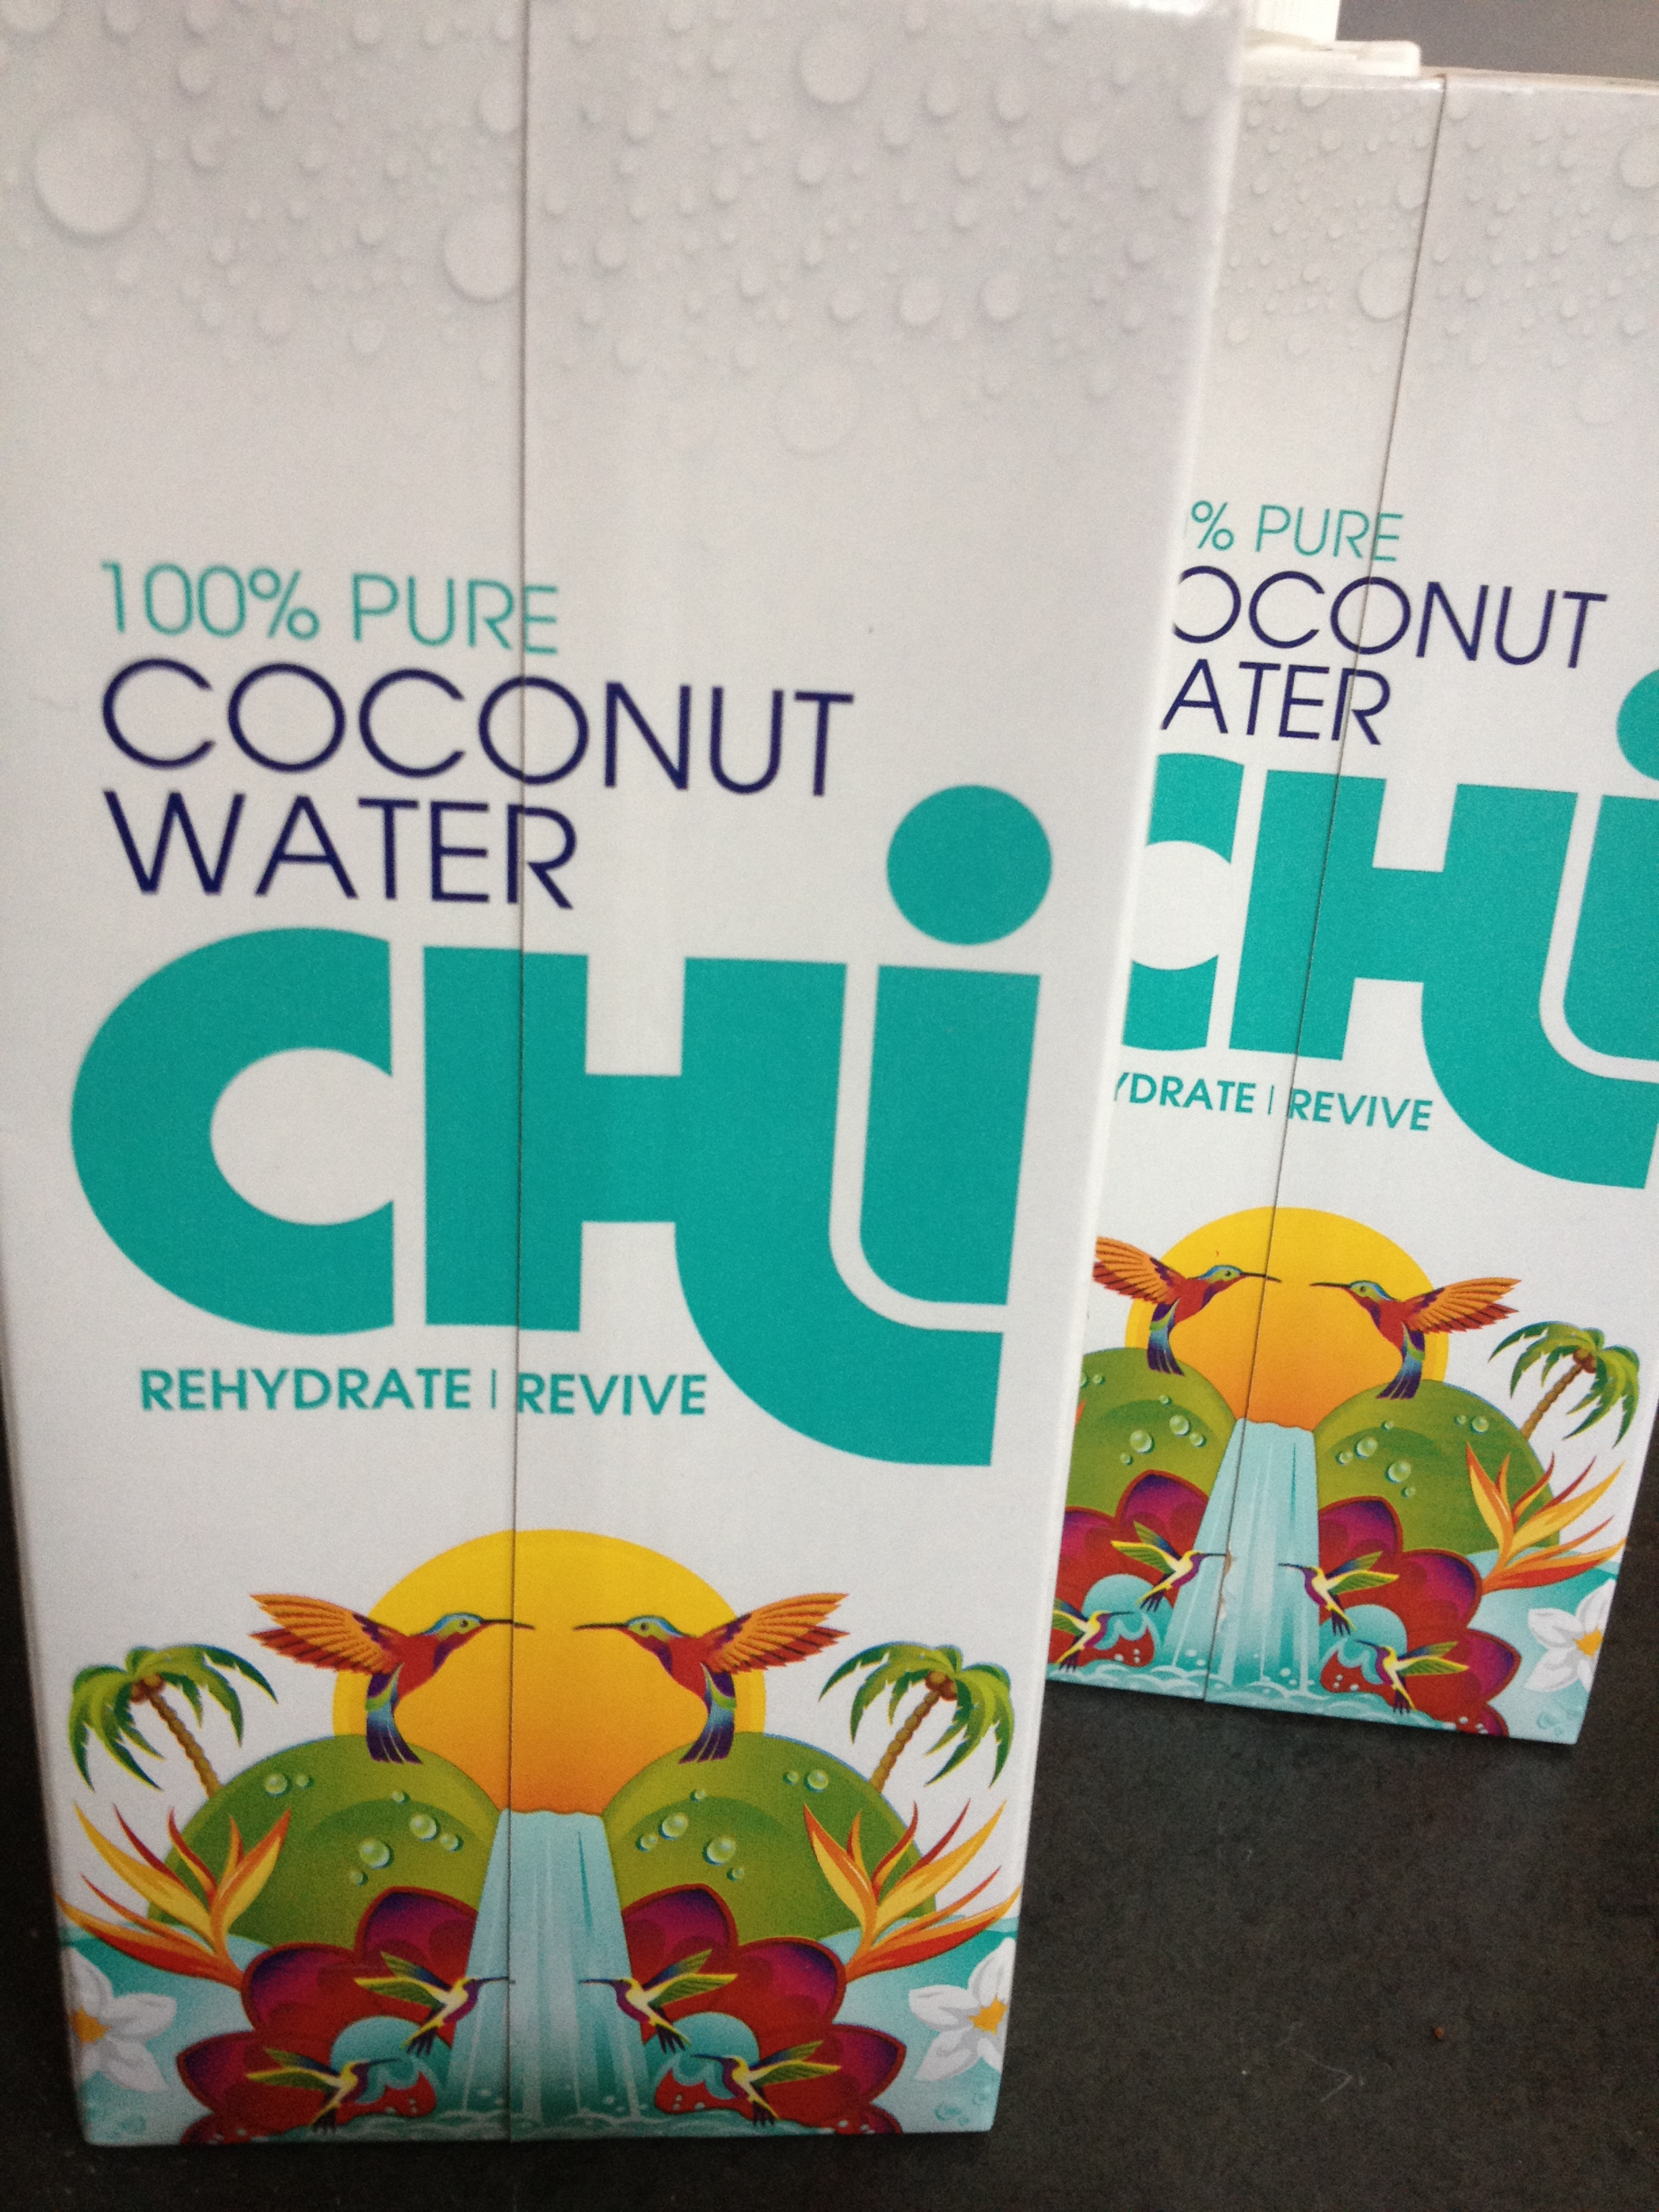 Quenching the thirst with Chi's Coconut water